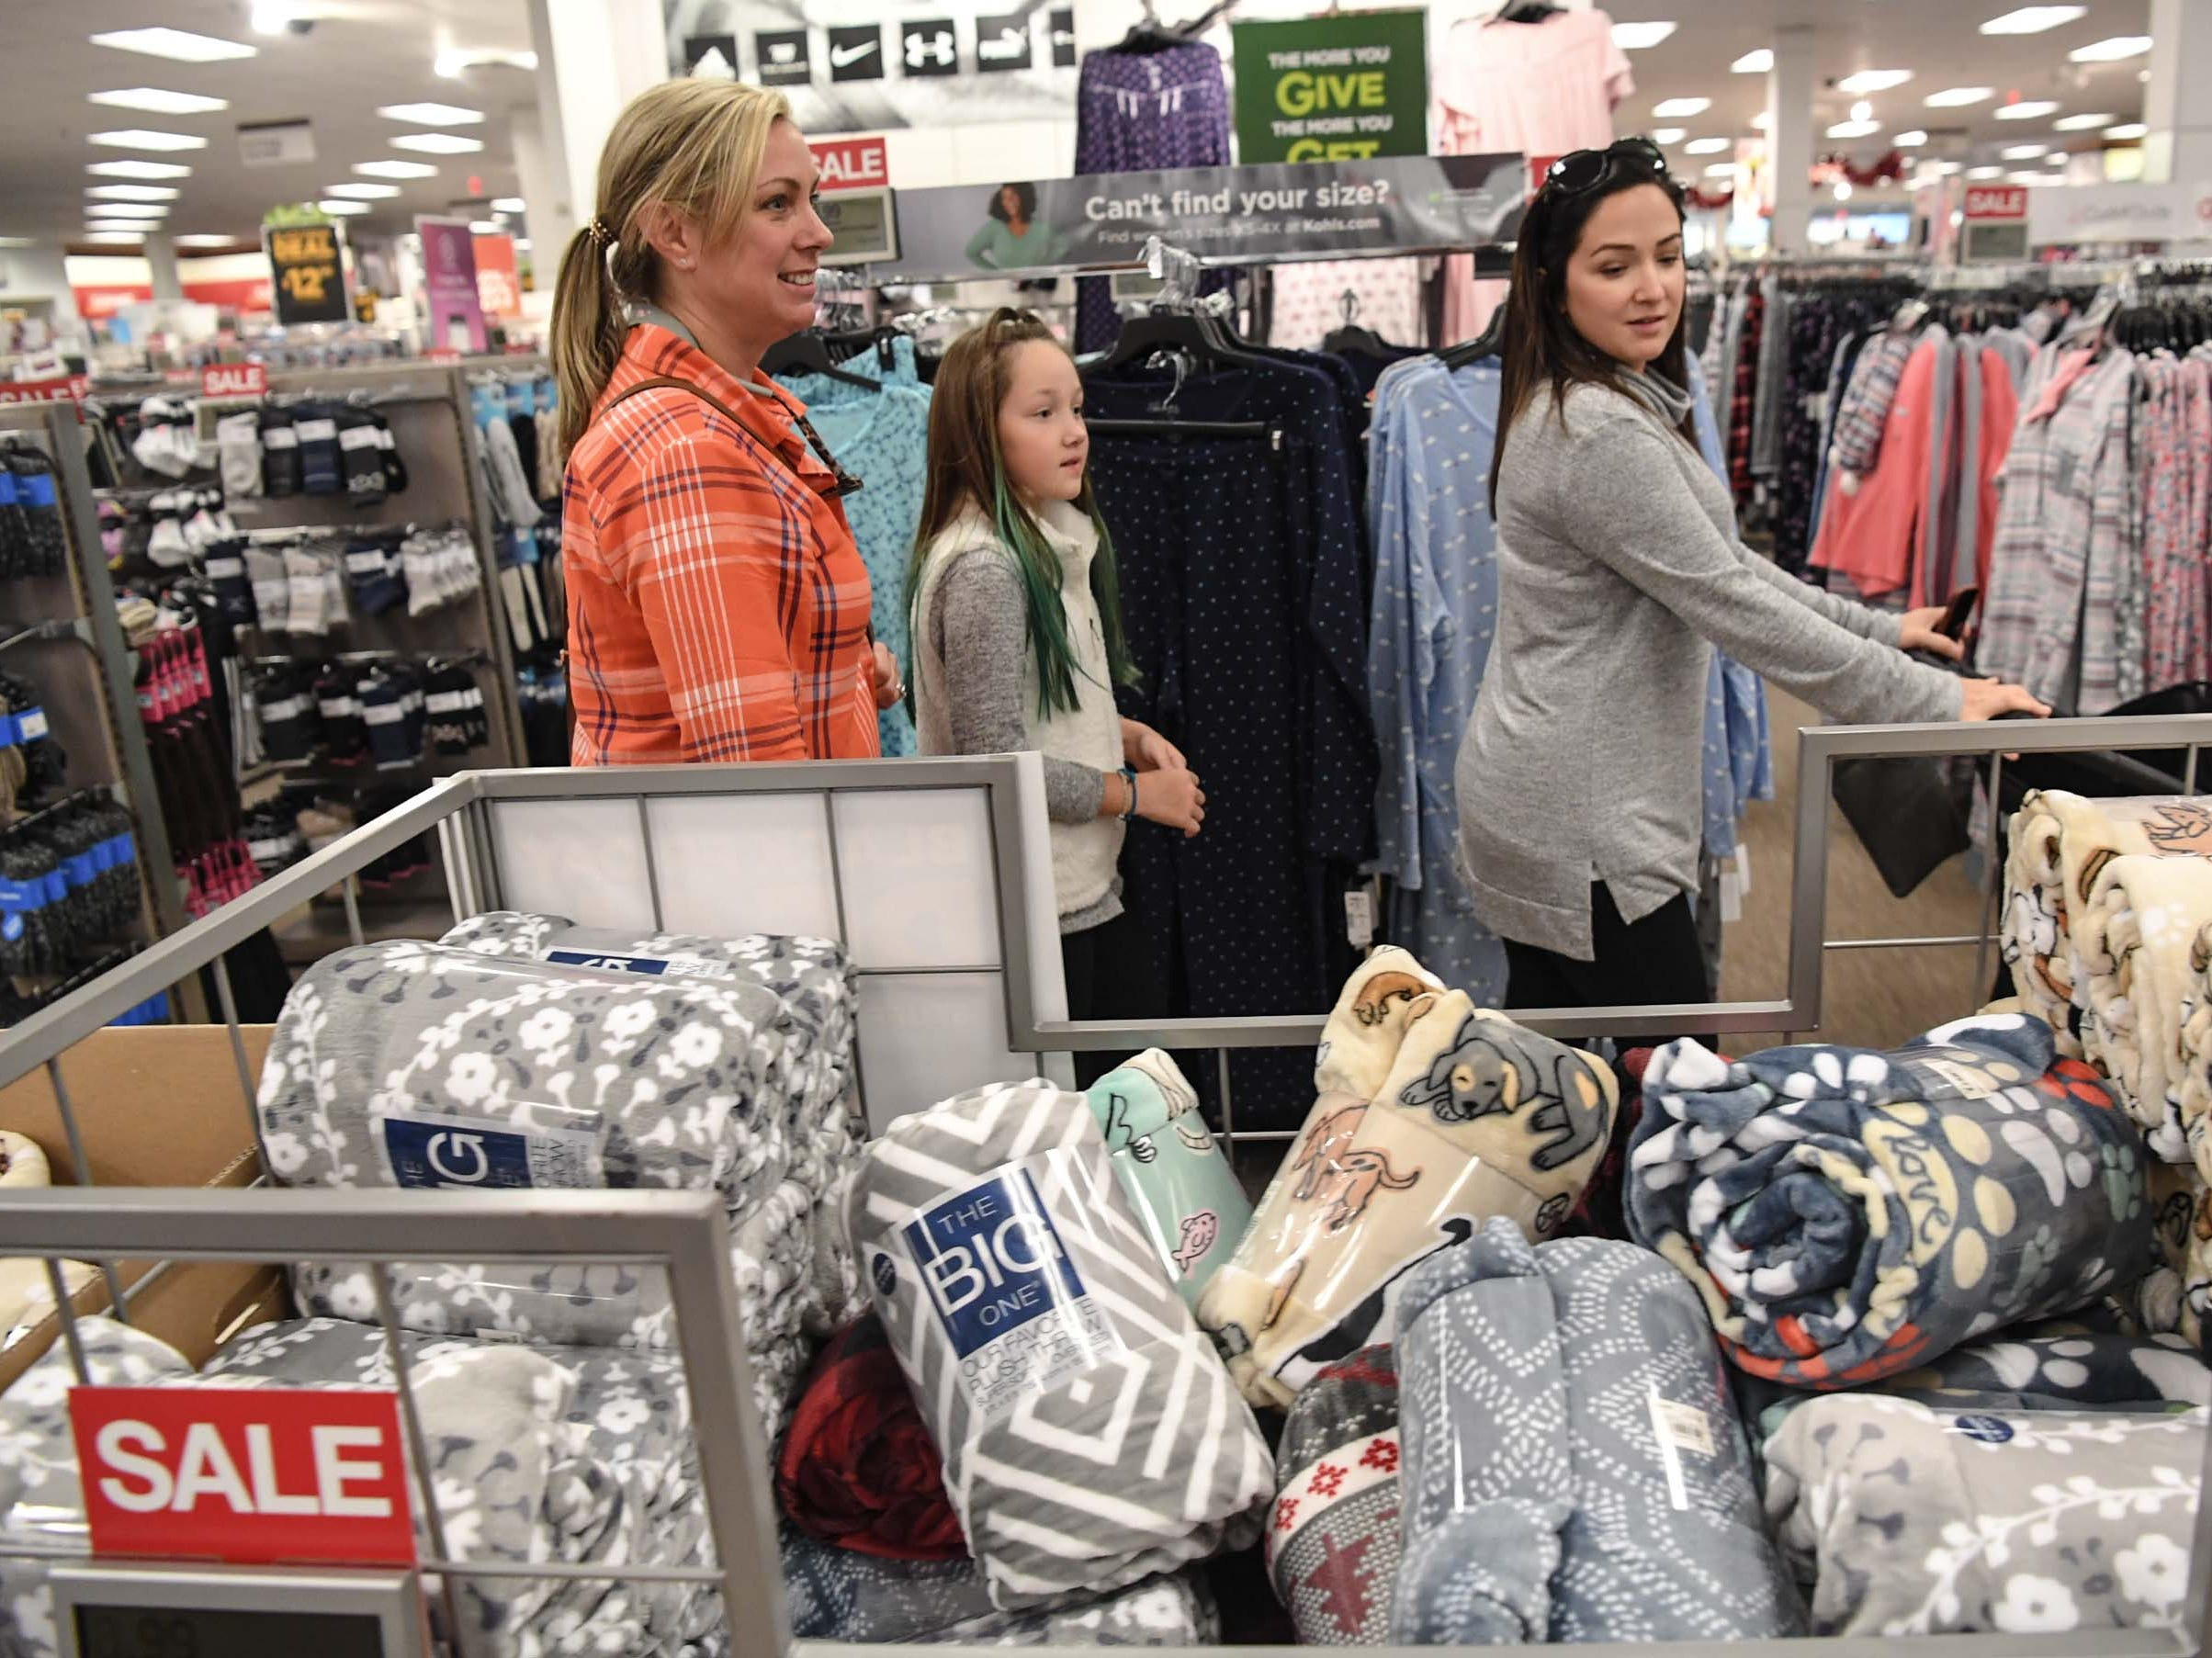 Sunny Davis, left, Lilah Bonnette, and her mother Victoria Bonnette move quickly through isles during Black Friday sales at Kohl's in Anderson on Thanksgiving Day, Thursday, November 22, 2018.